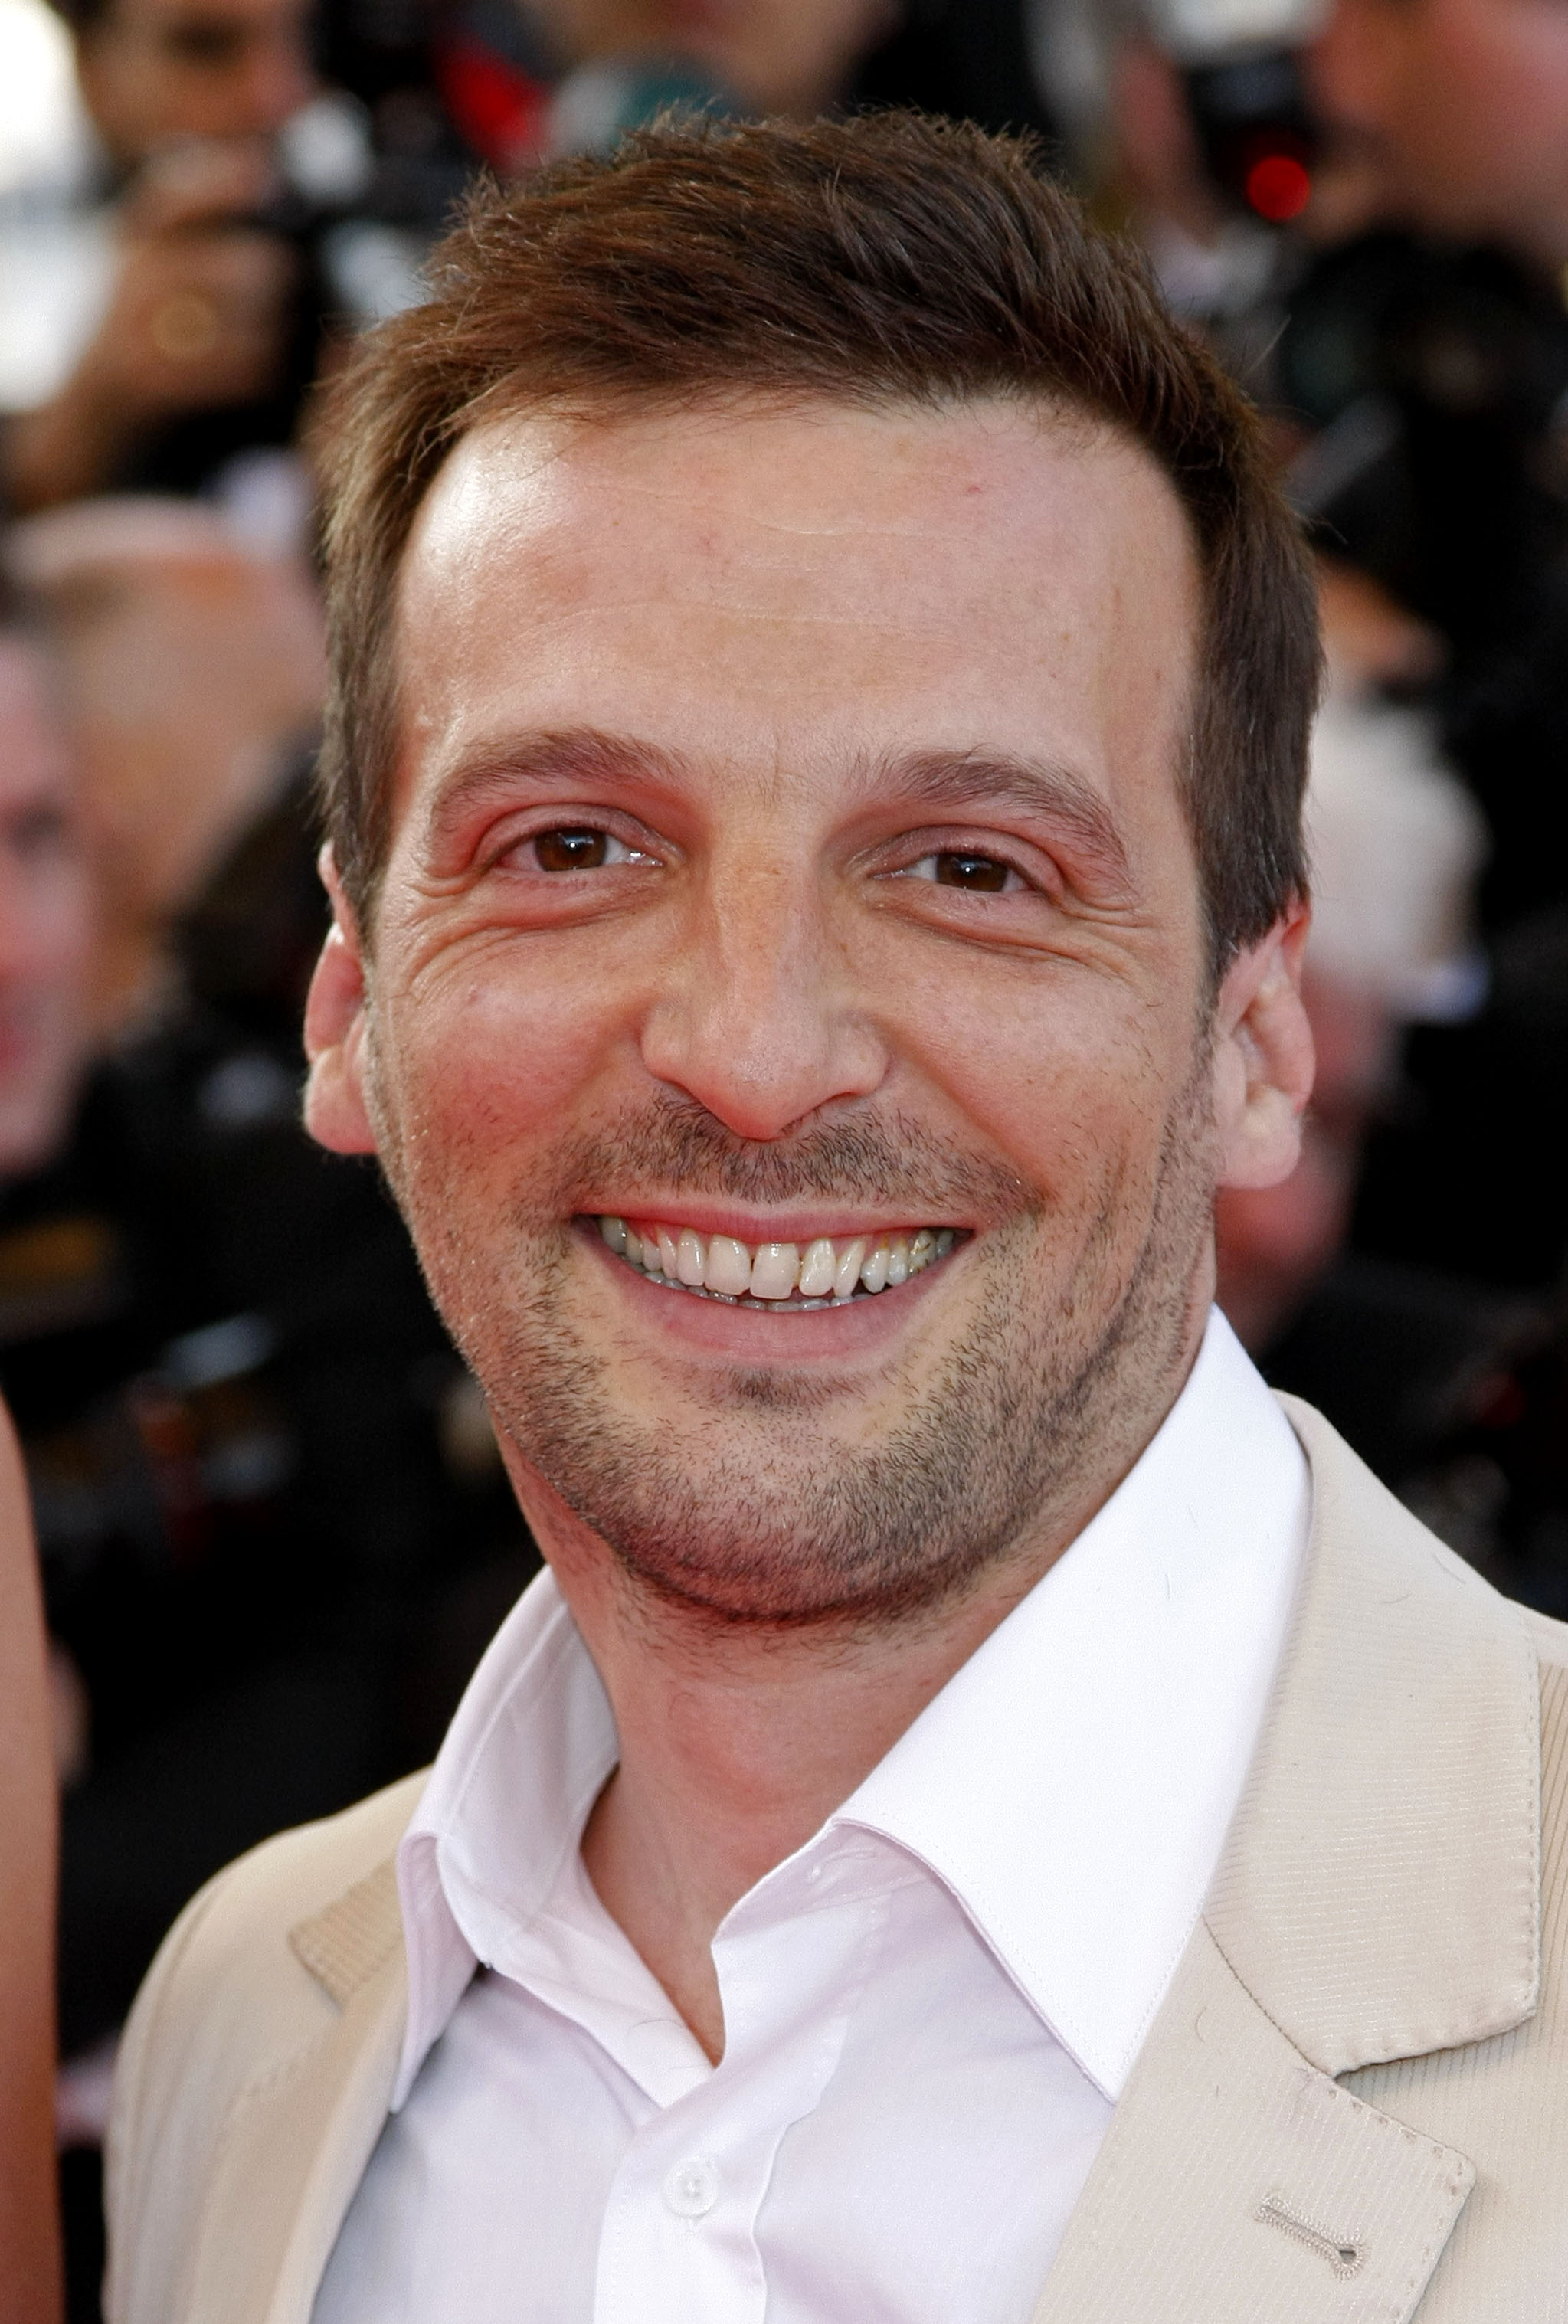 mathieu kassovitz instagram